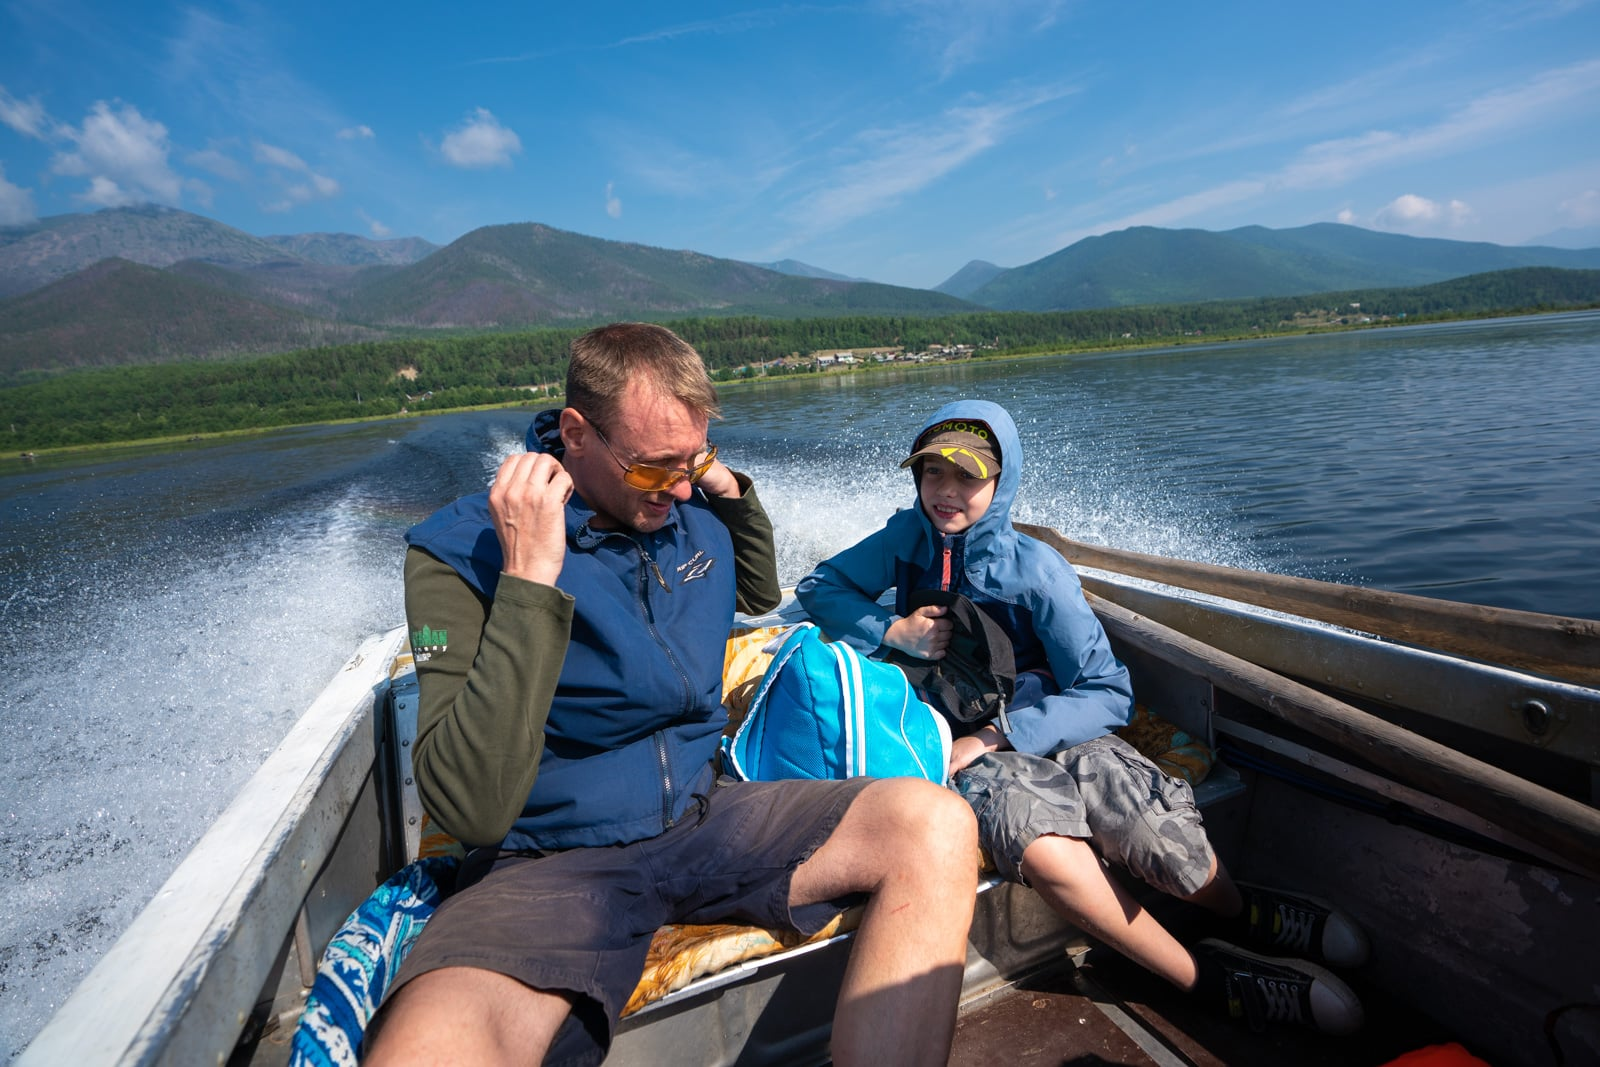 Russian man and his son on a boat in Lake Baikal in Siberia, Russia